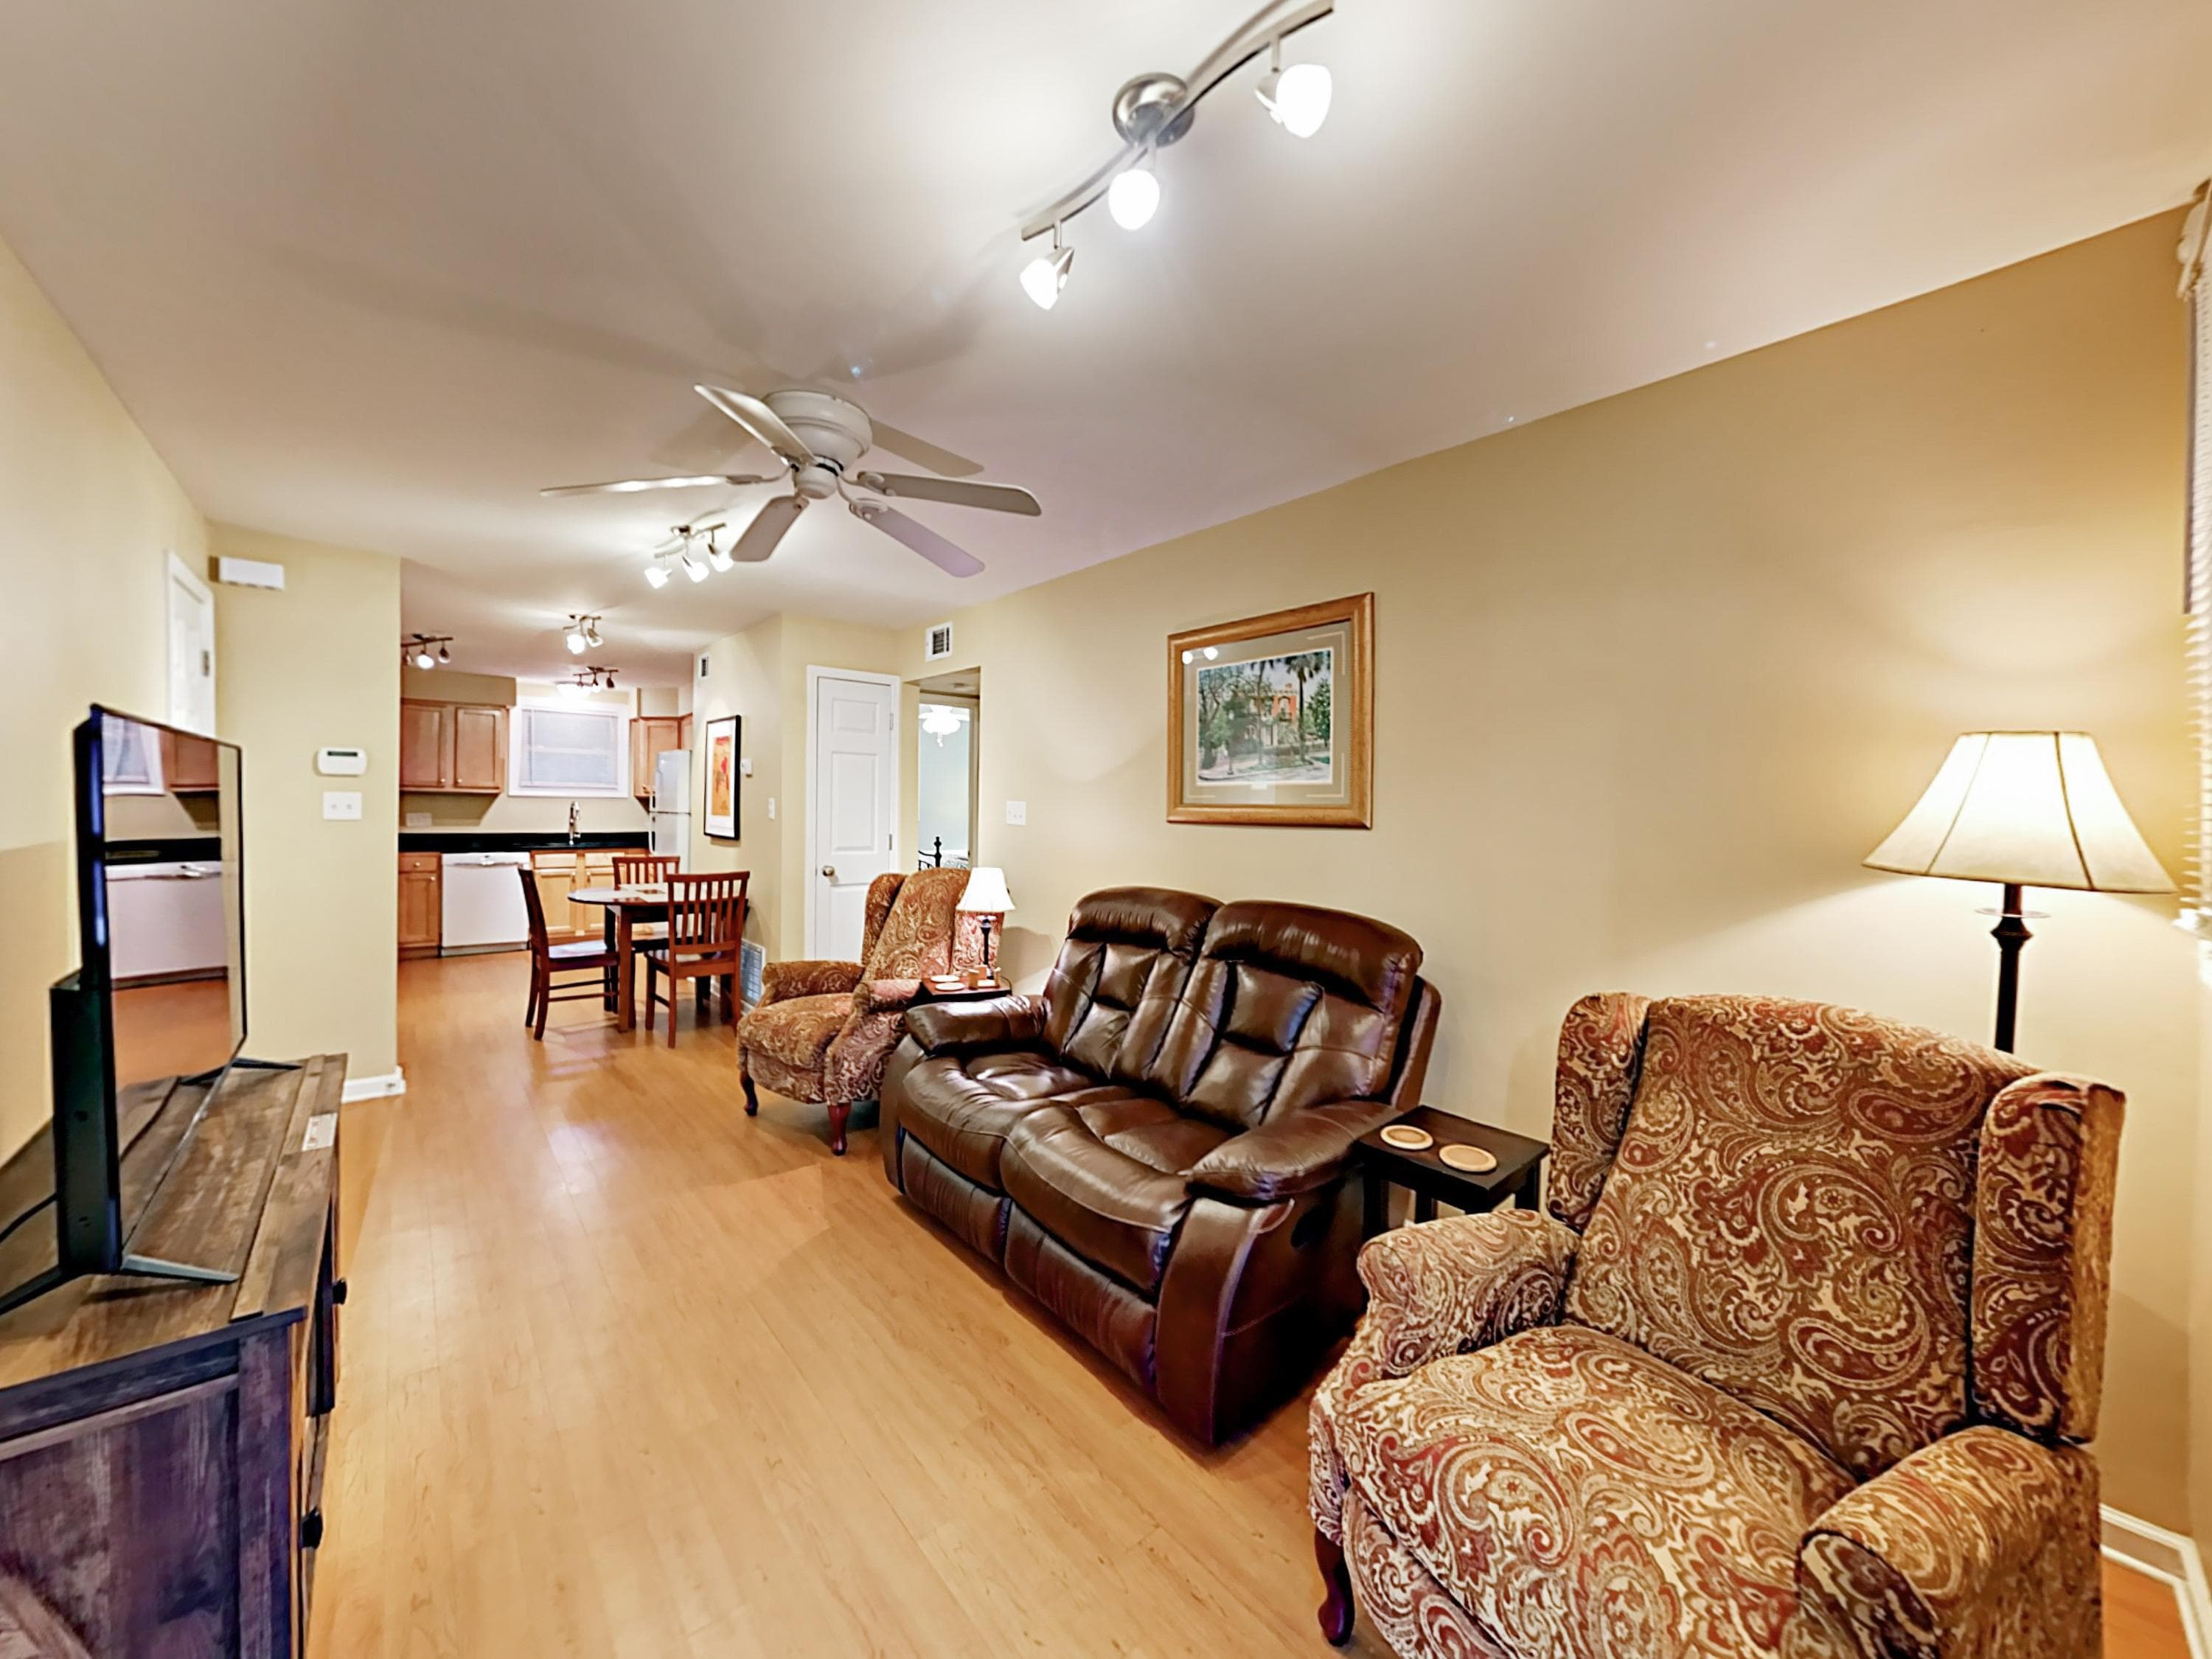 Welcome to Savannah! Your rental is professionally managed by TurnKey Vacation Rentals.